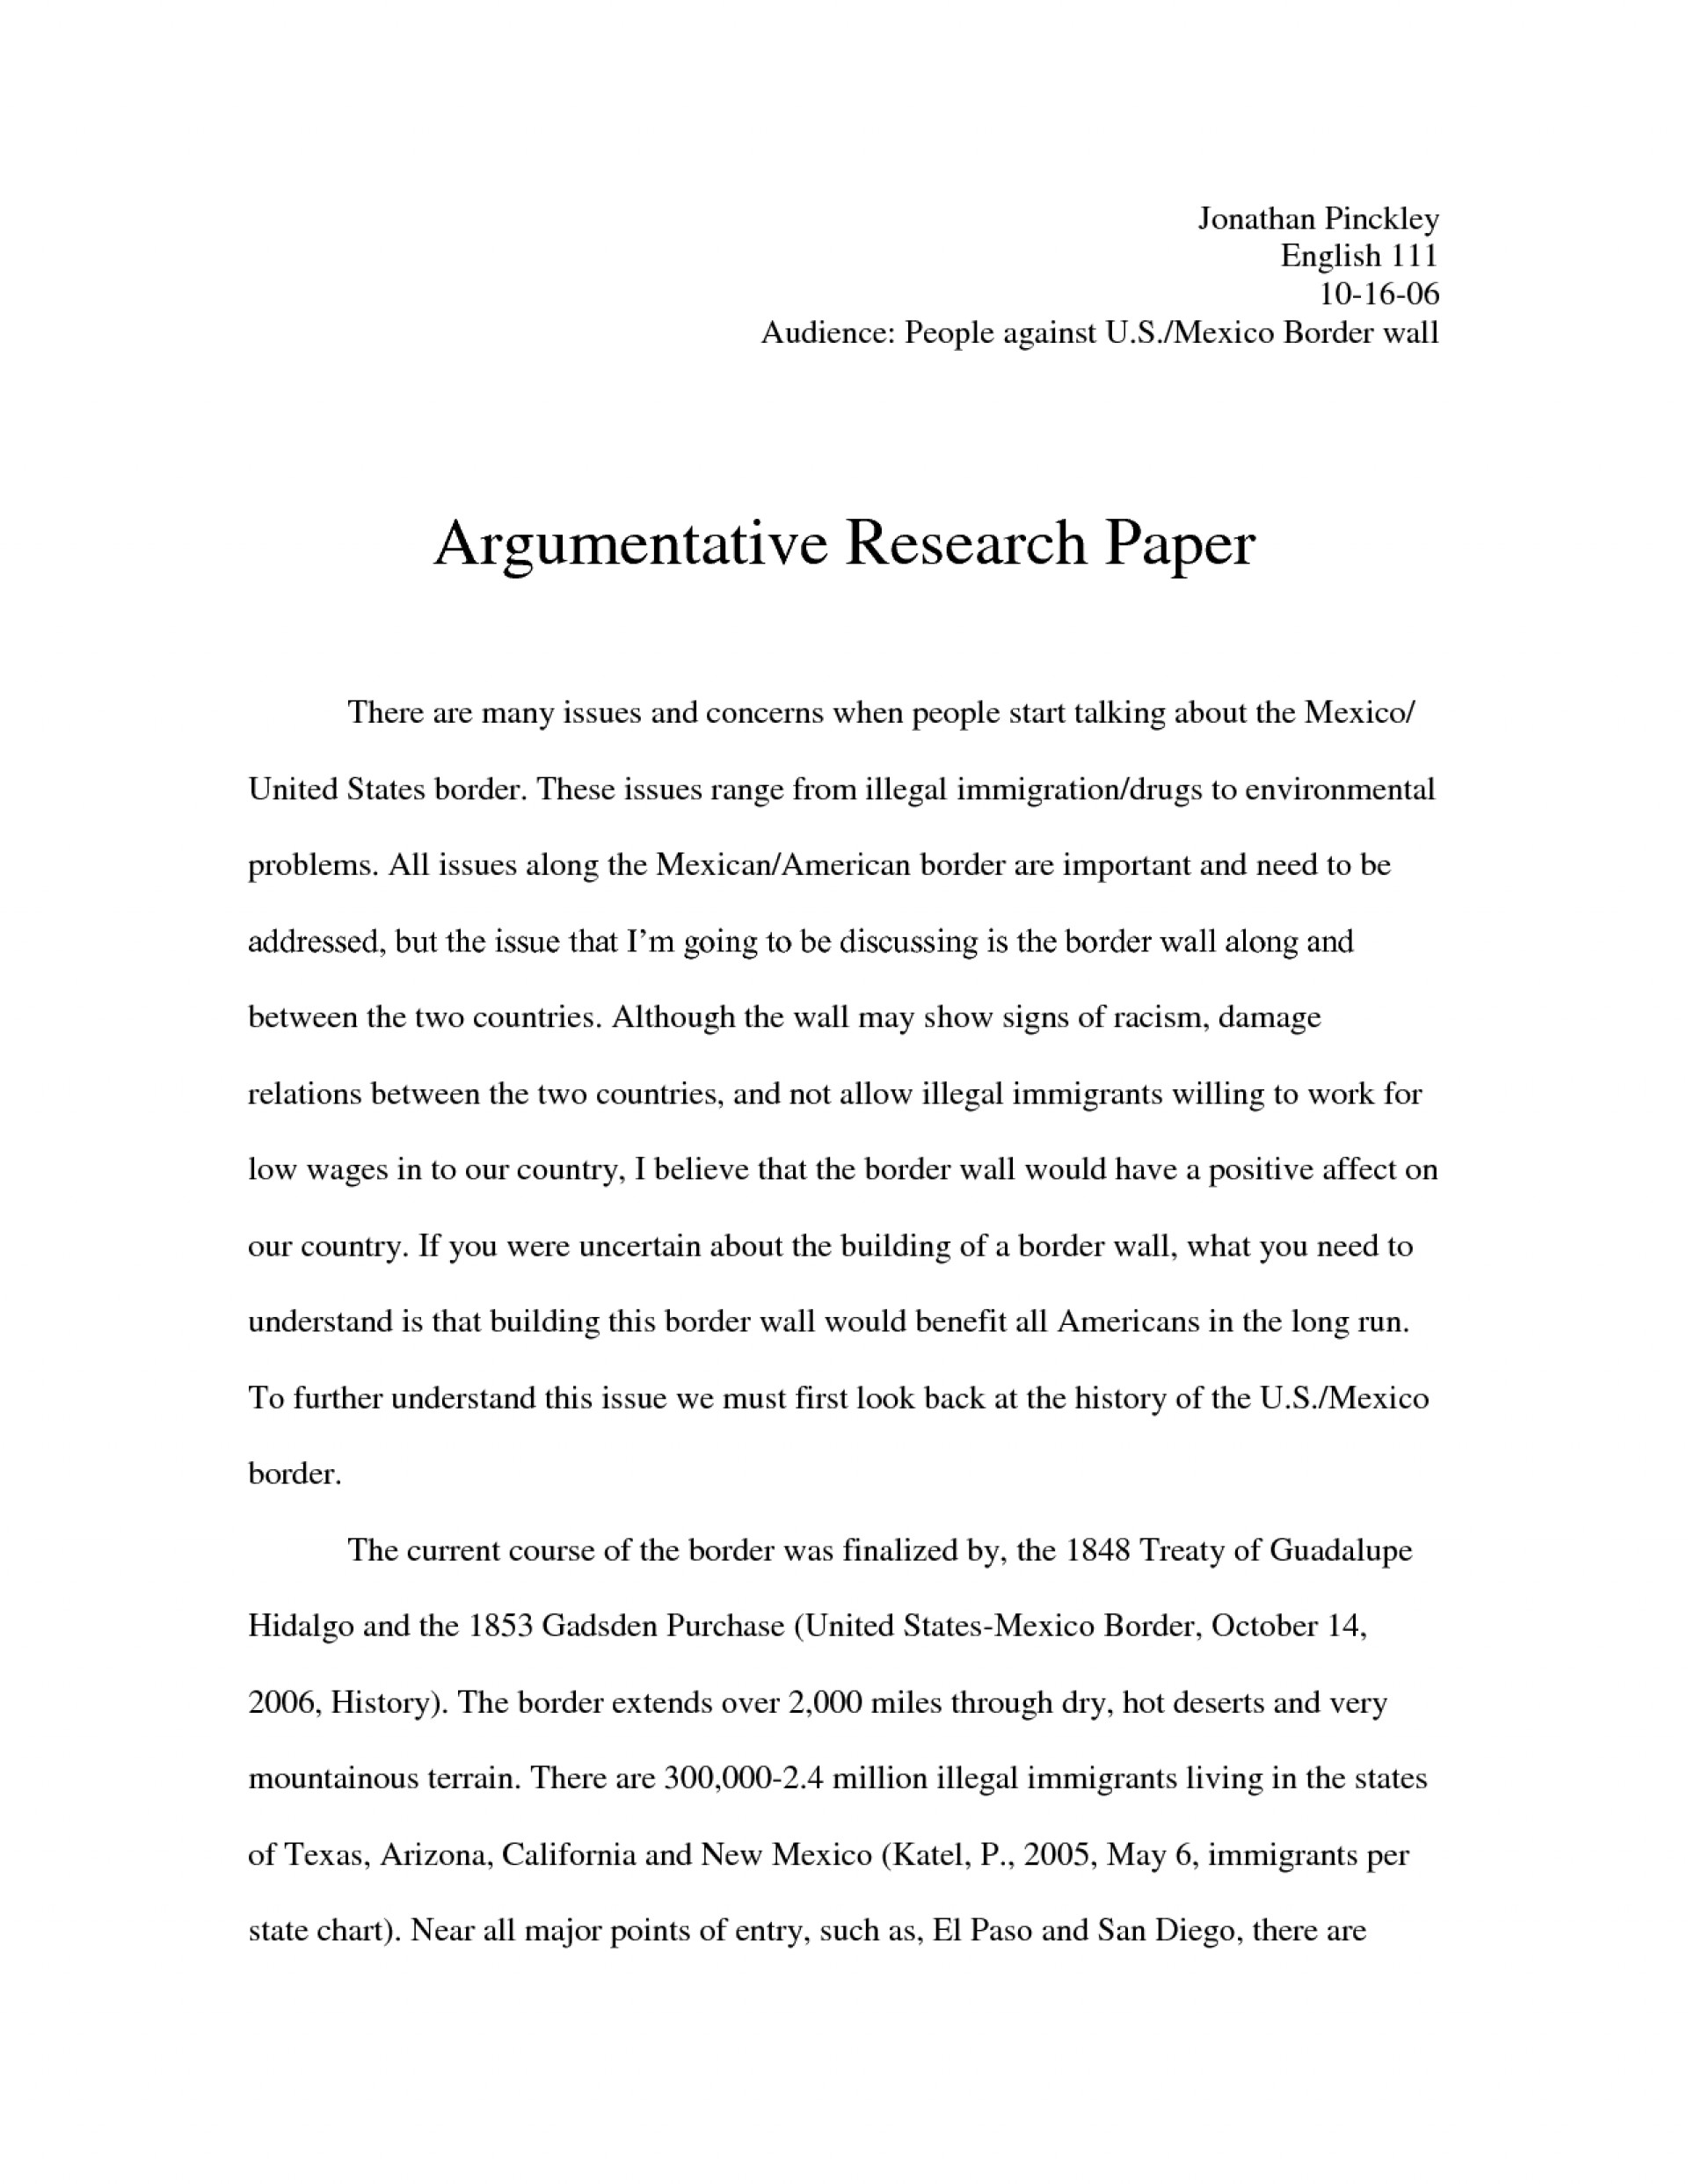 014 Uncategorized Debate20y Argumentative Thesis High School Topics Sentence Starters Outline Worksheet Structure20 For Research Rare A Paper Easy Papers Interesting 1920